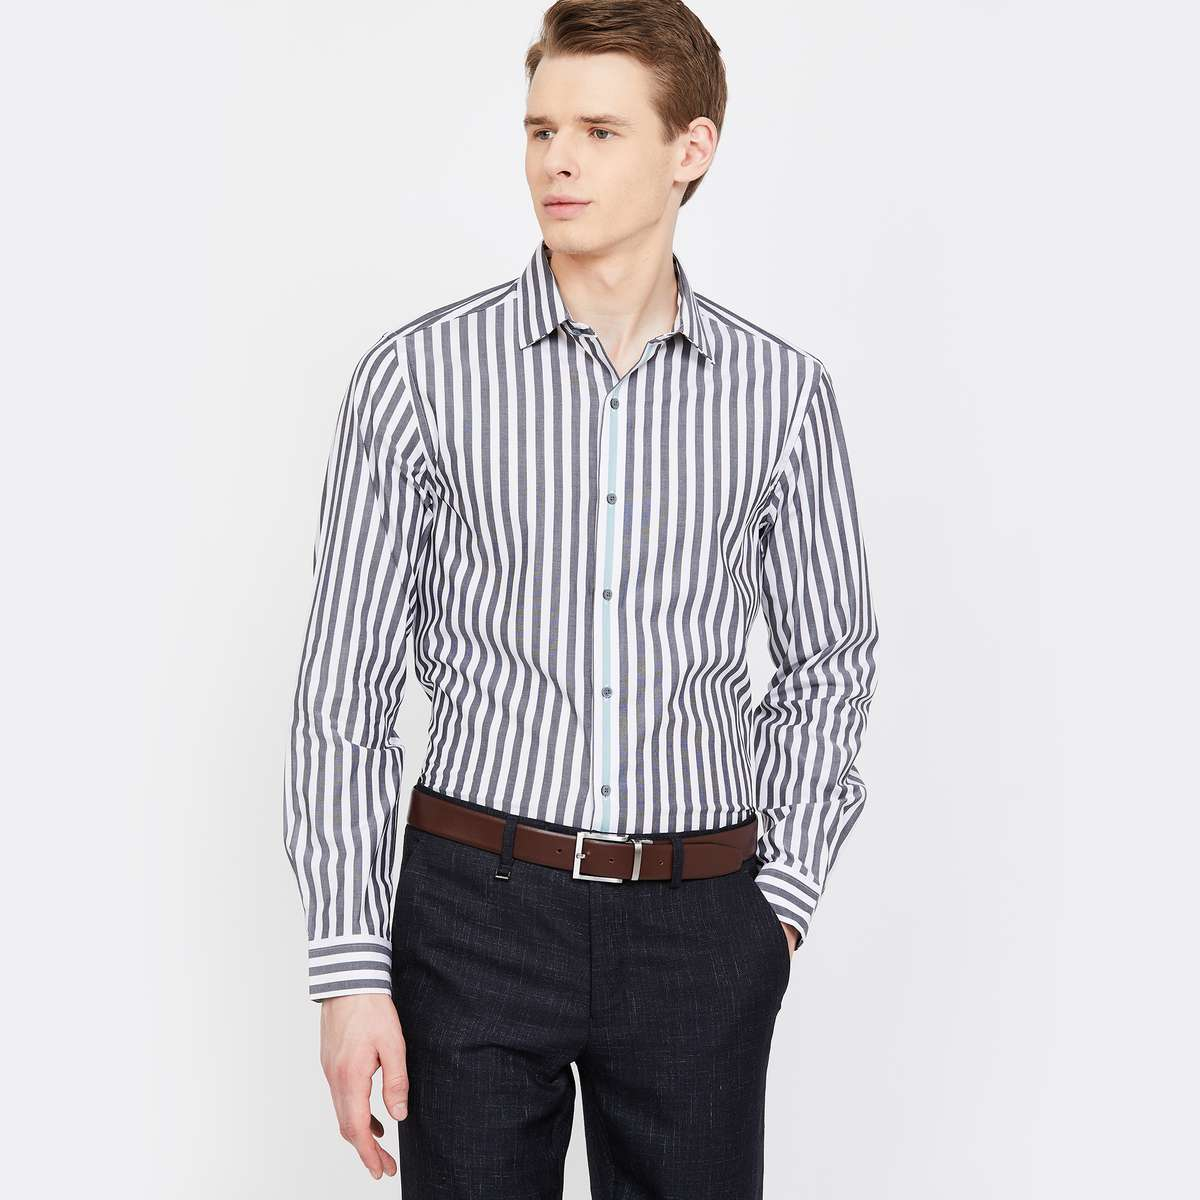 ARROW NEW YORK Striped Super Slim Fit Formal Shirt